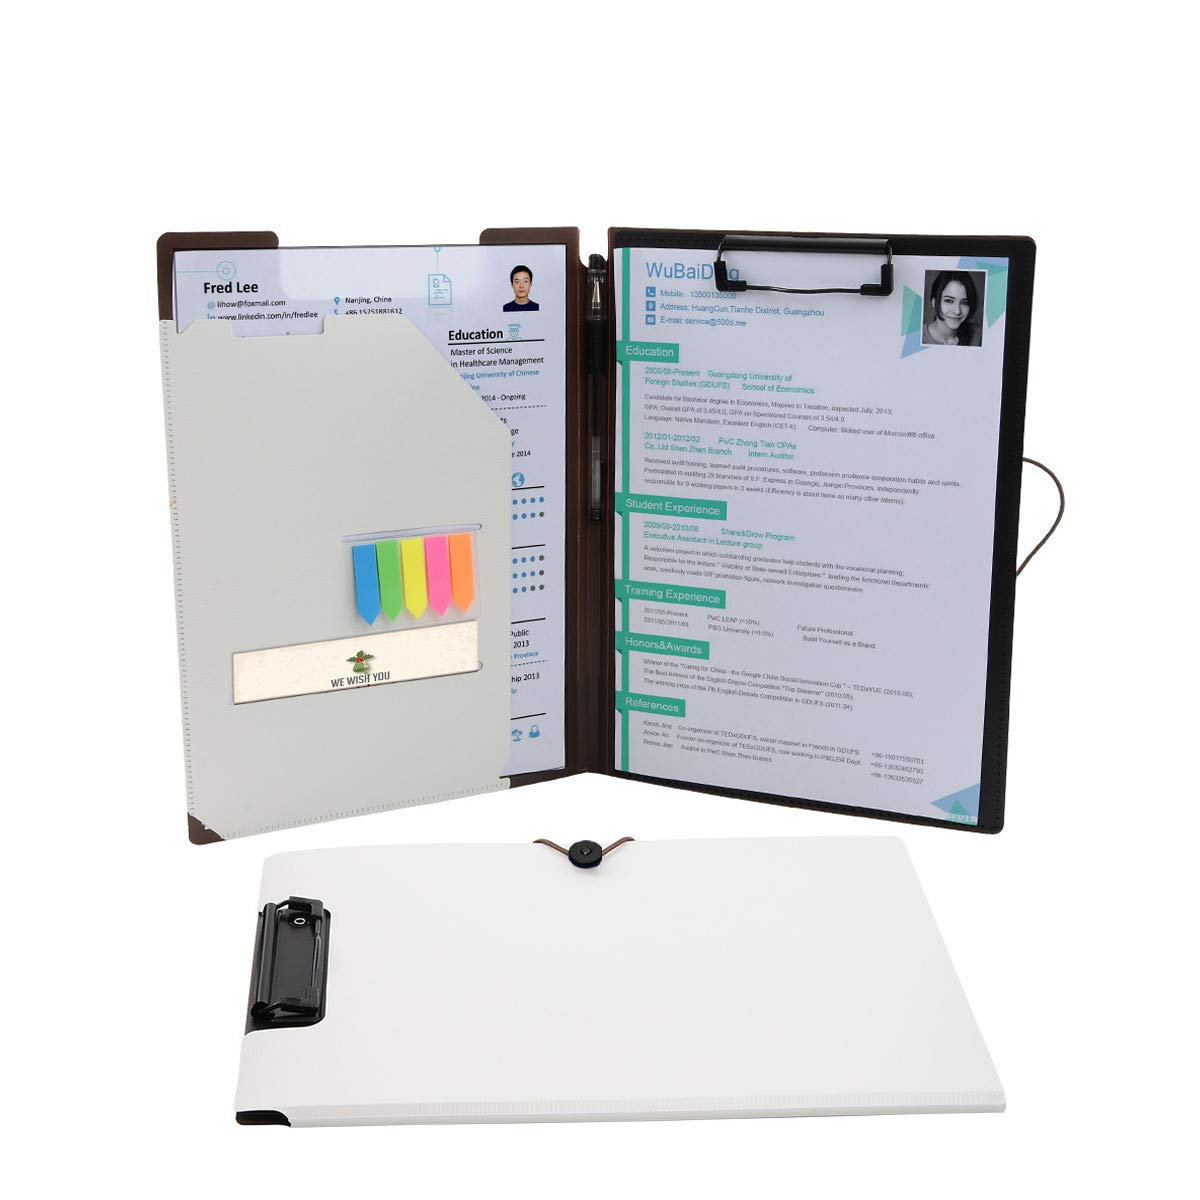 Padfolio Portfolio Clipboard Folders, Kakbpe Bussiness Letter Size Padfolio with Refillable Notepads, Give a Total of 100 Note Page Markers in Five Colors(2 Pack, White)